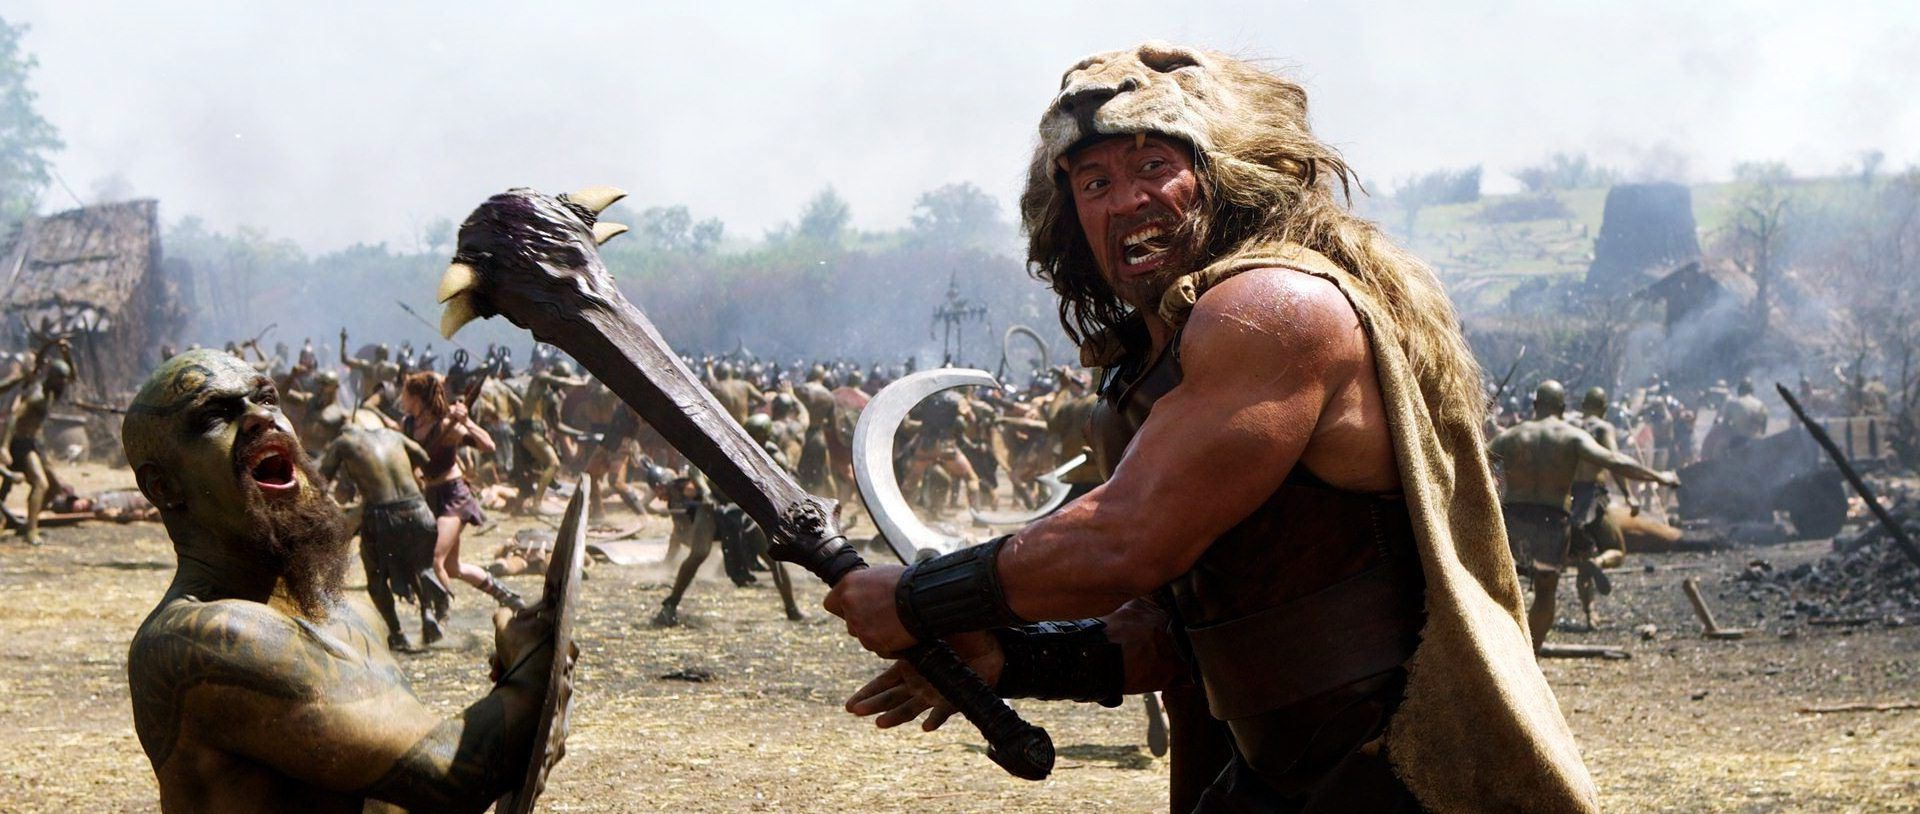 An image from Hercules